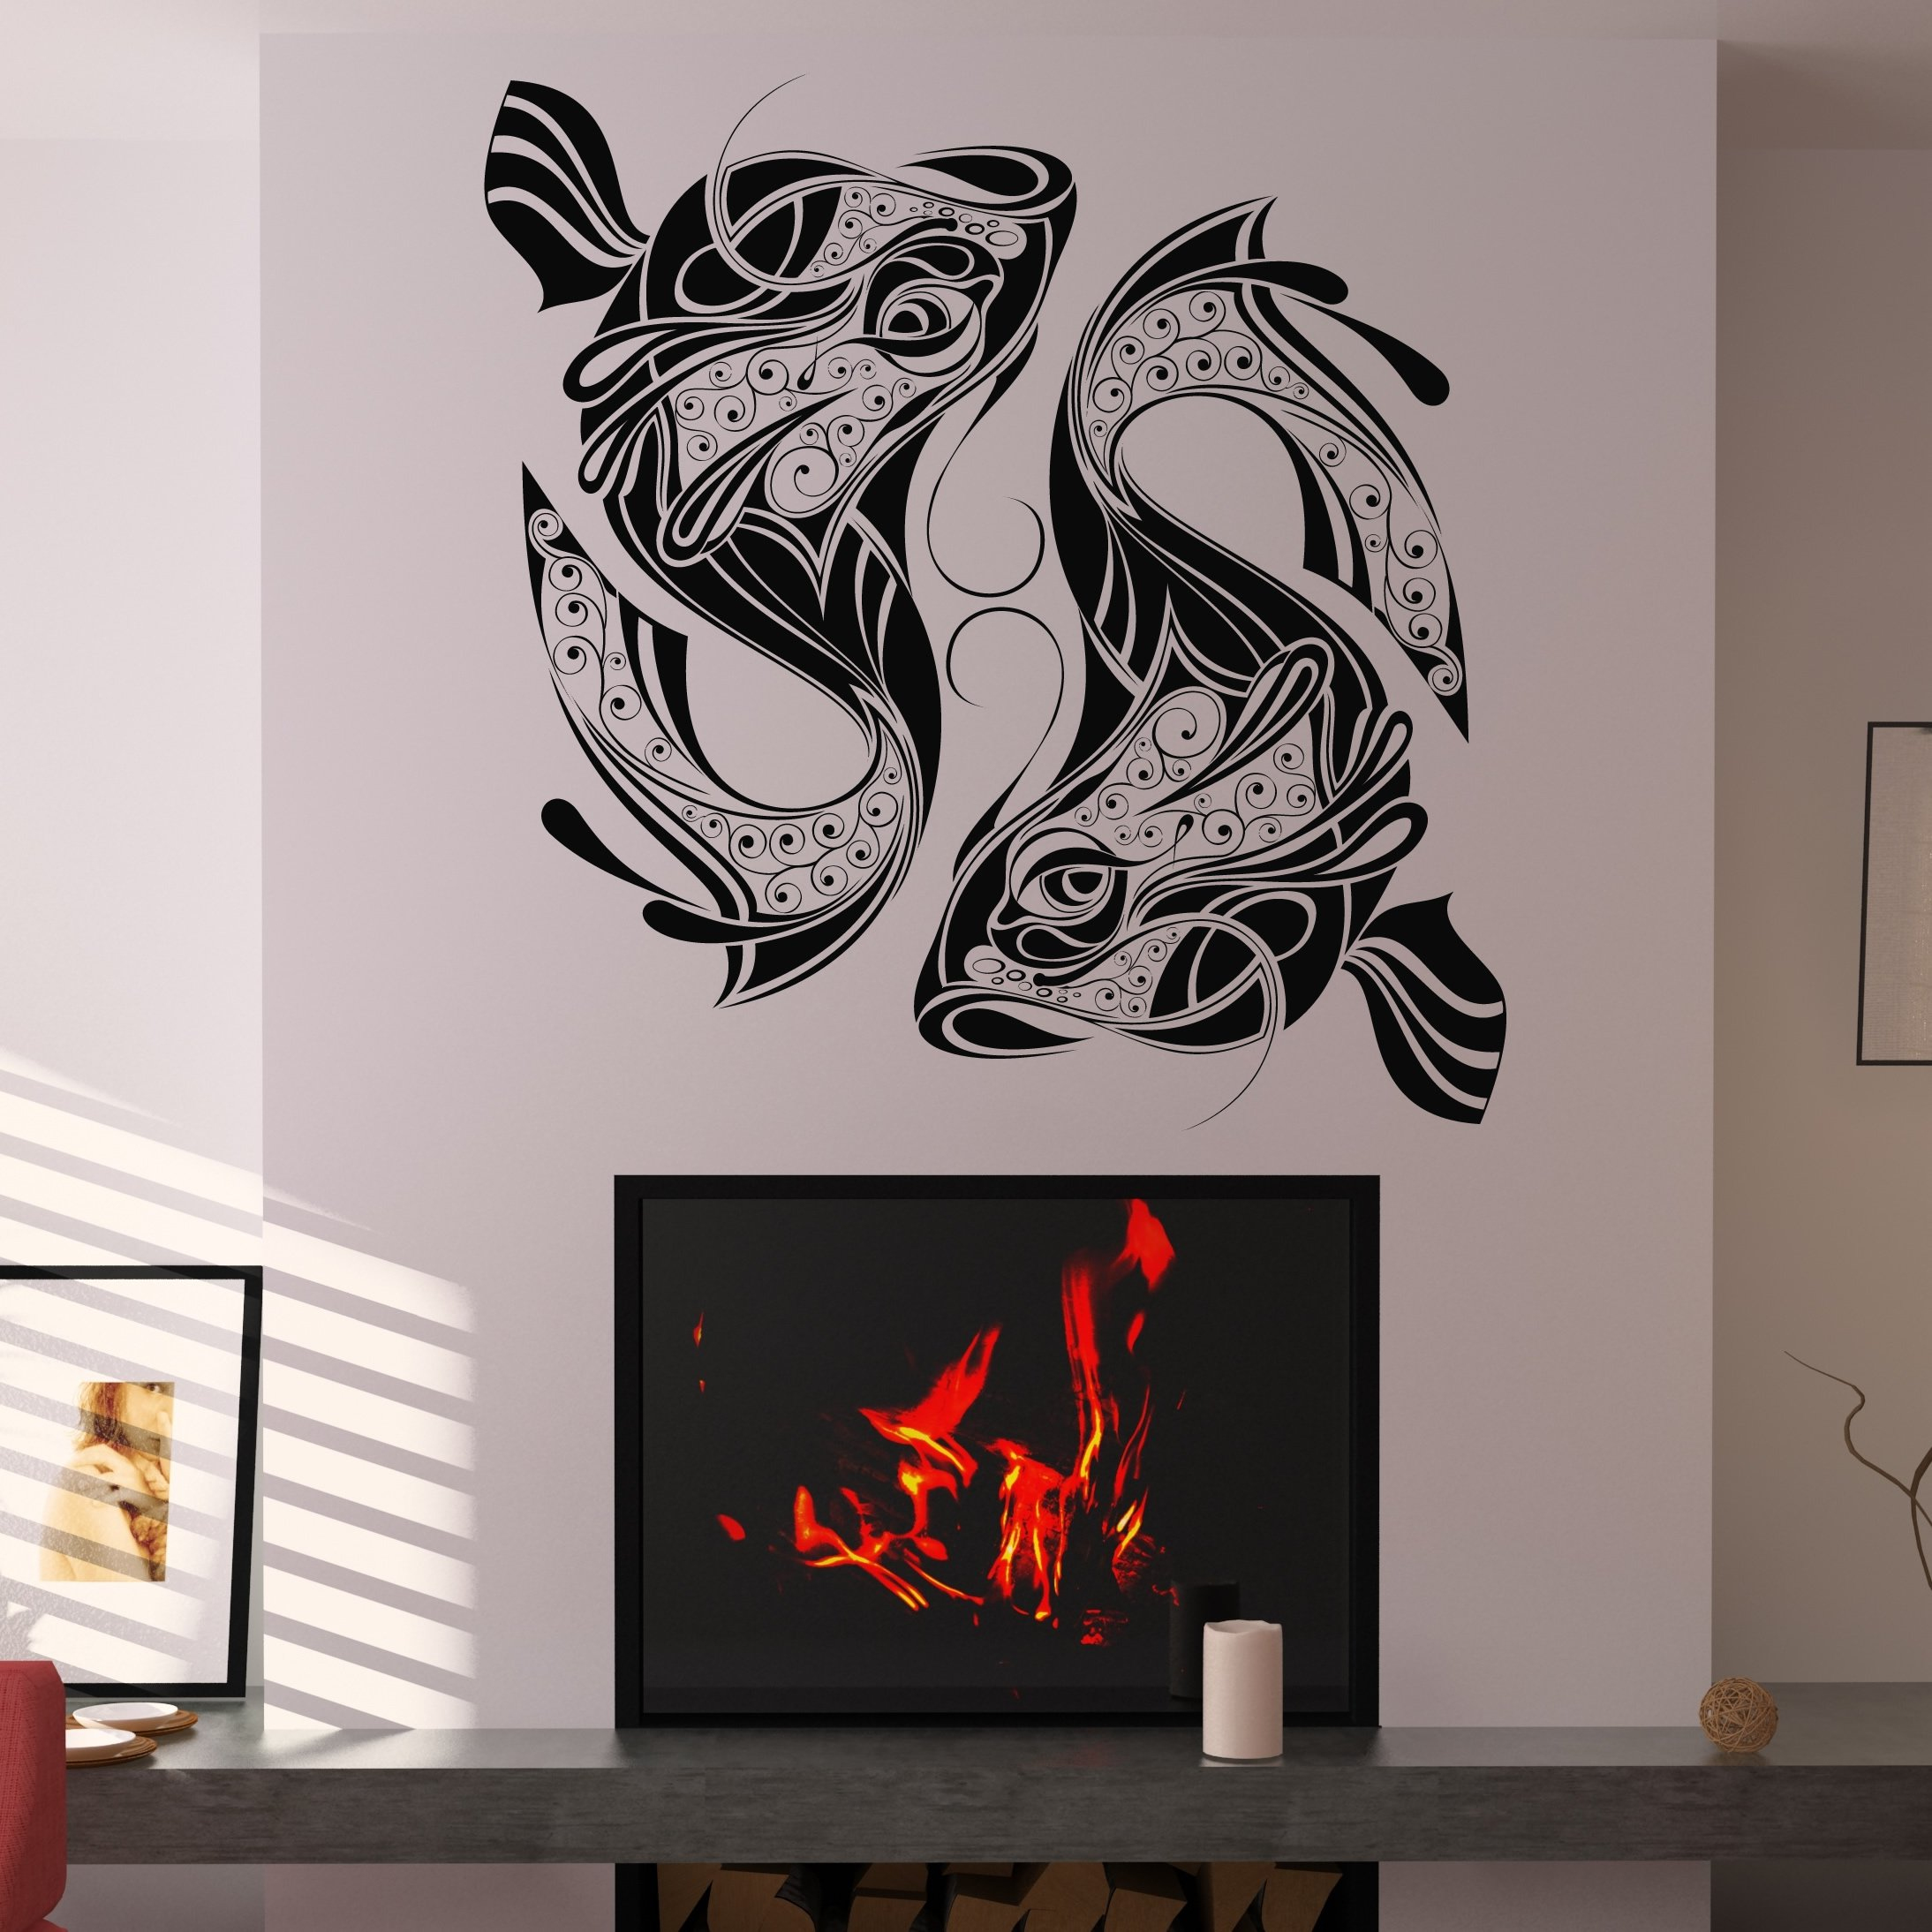 17 Architectural Wall Graphics Images